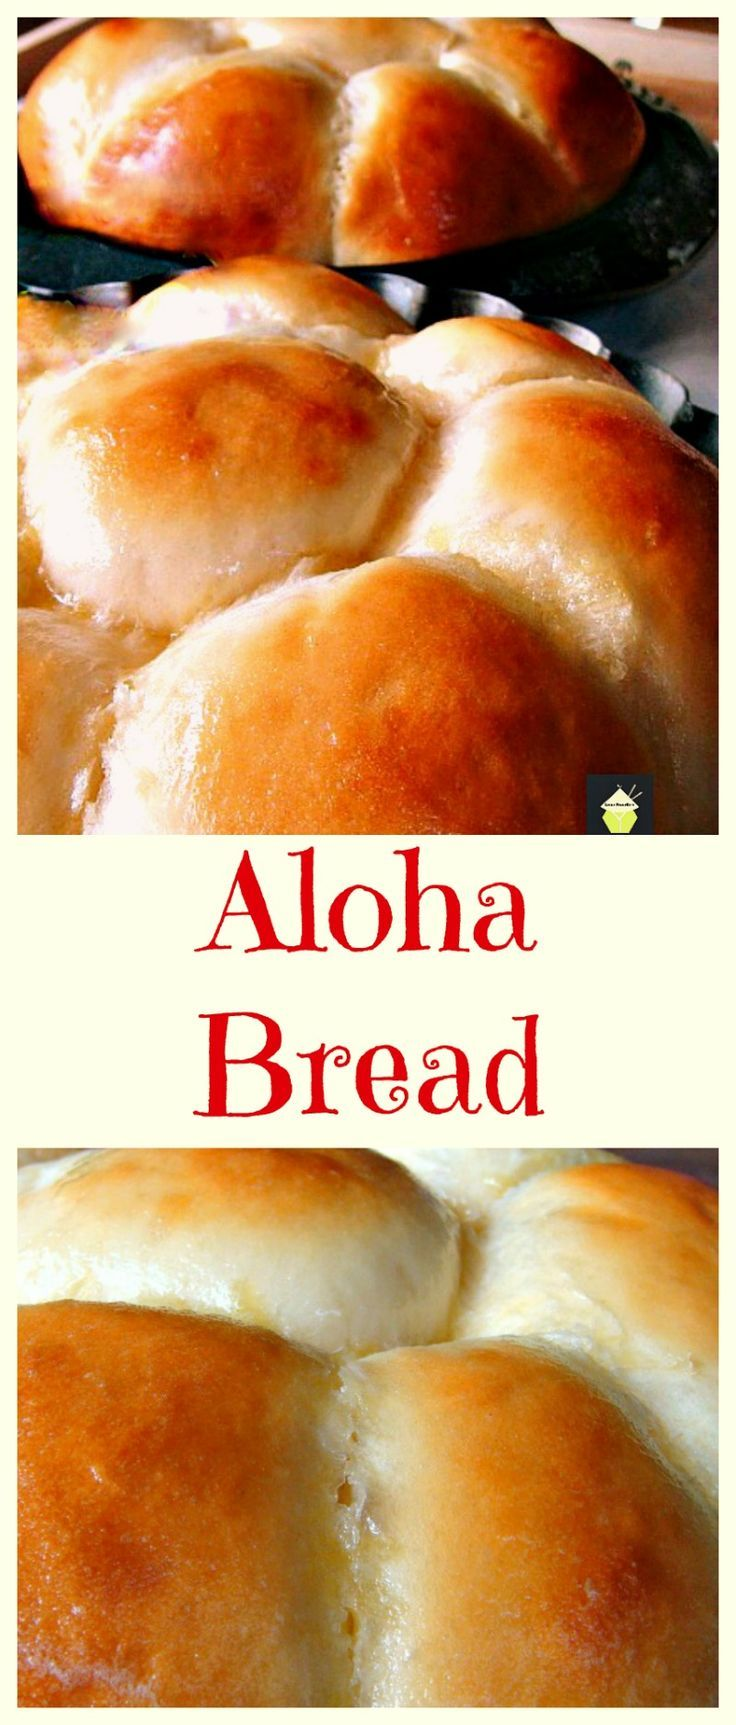 ALOHA BREAD! I made the recipe super easy for you, the rolls are sweet, soft, and oh yes..... they even say Aloha when you bite into them!  Also great for French Toast too. These are great anytime, and perfect for Thanksgiving too!